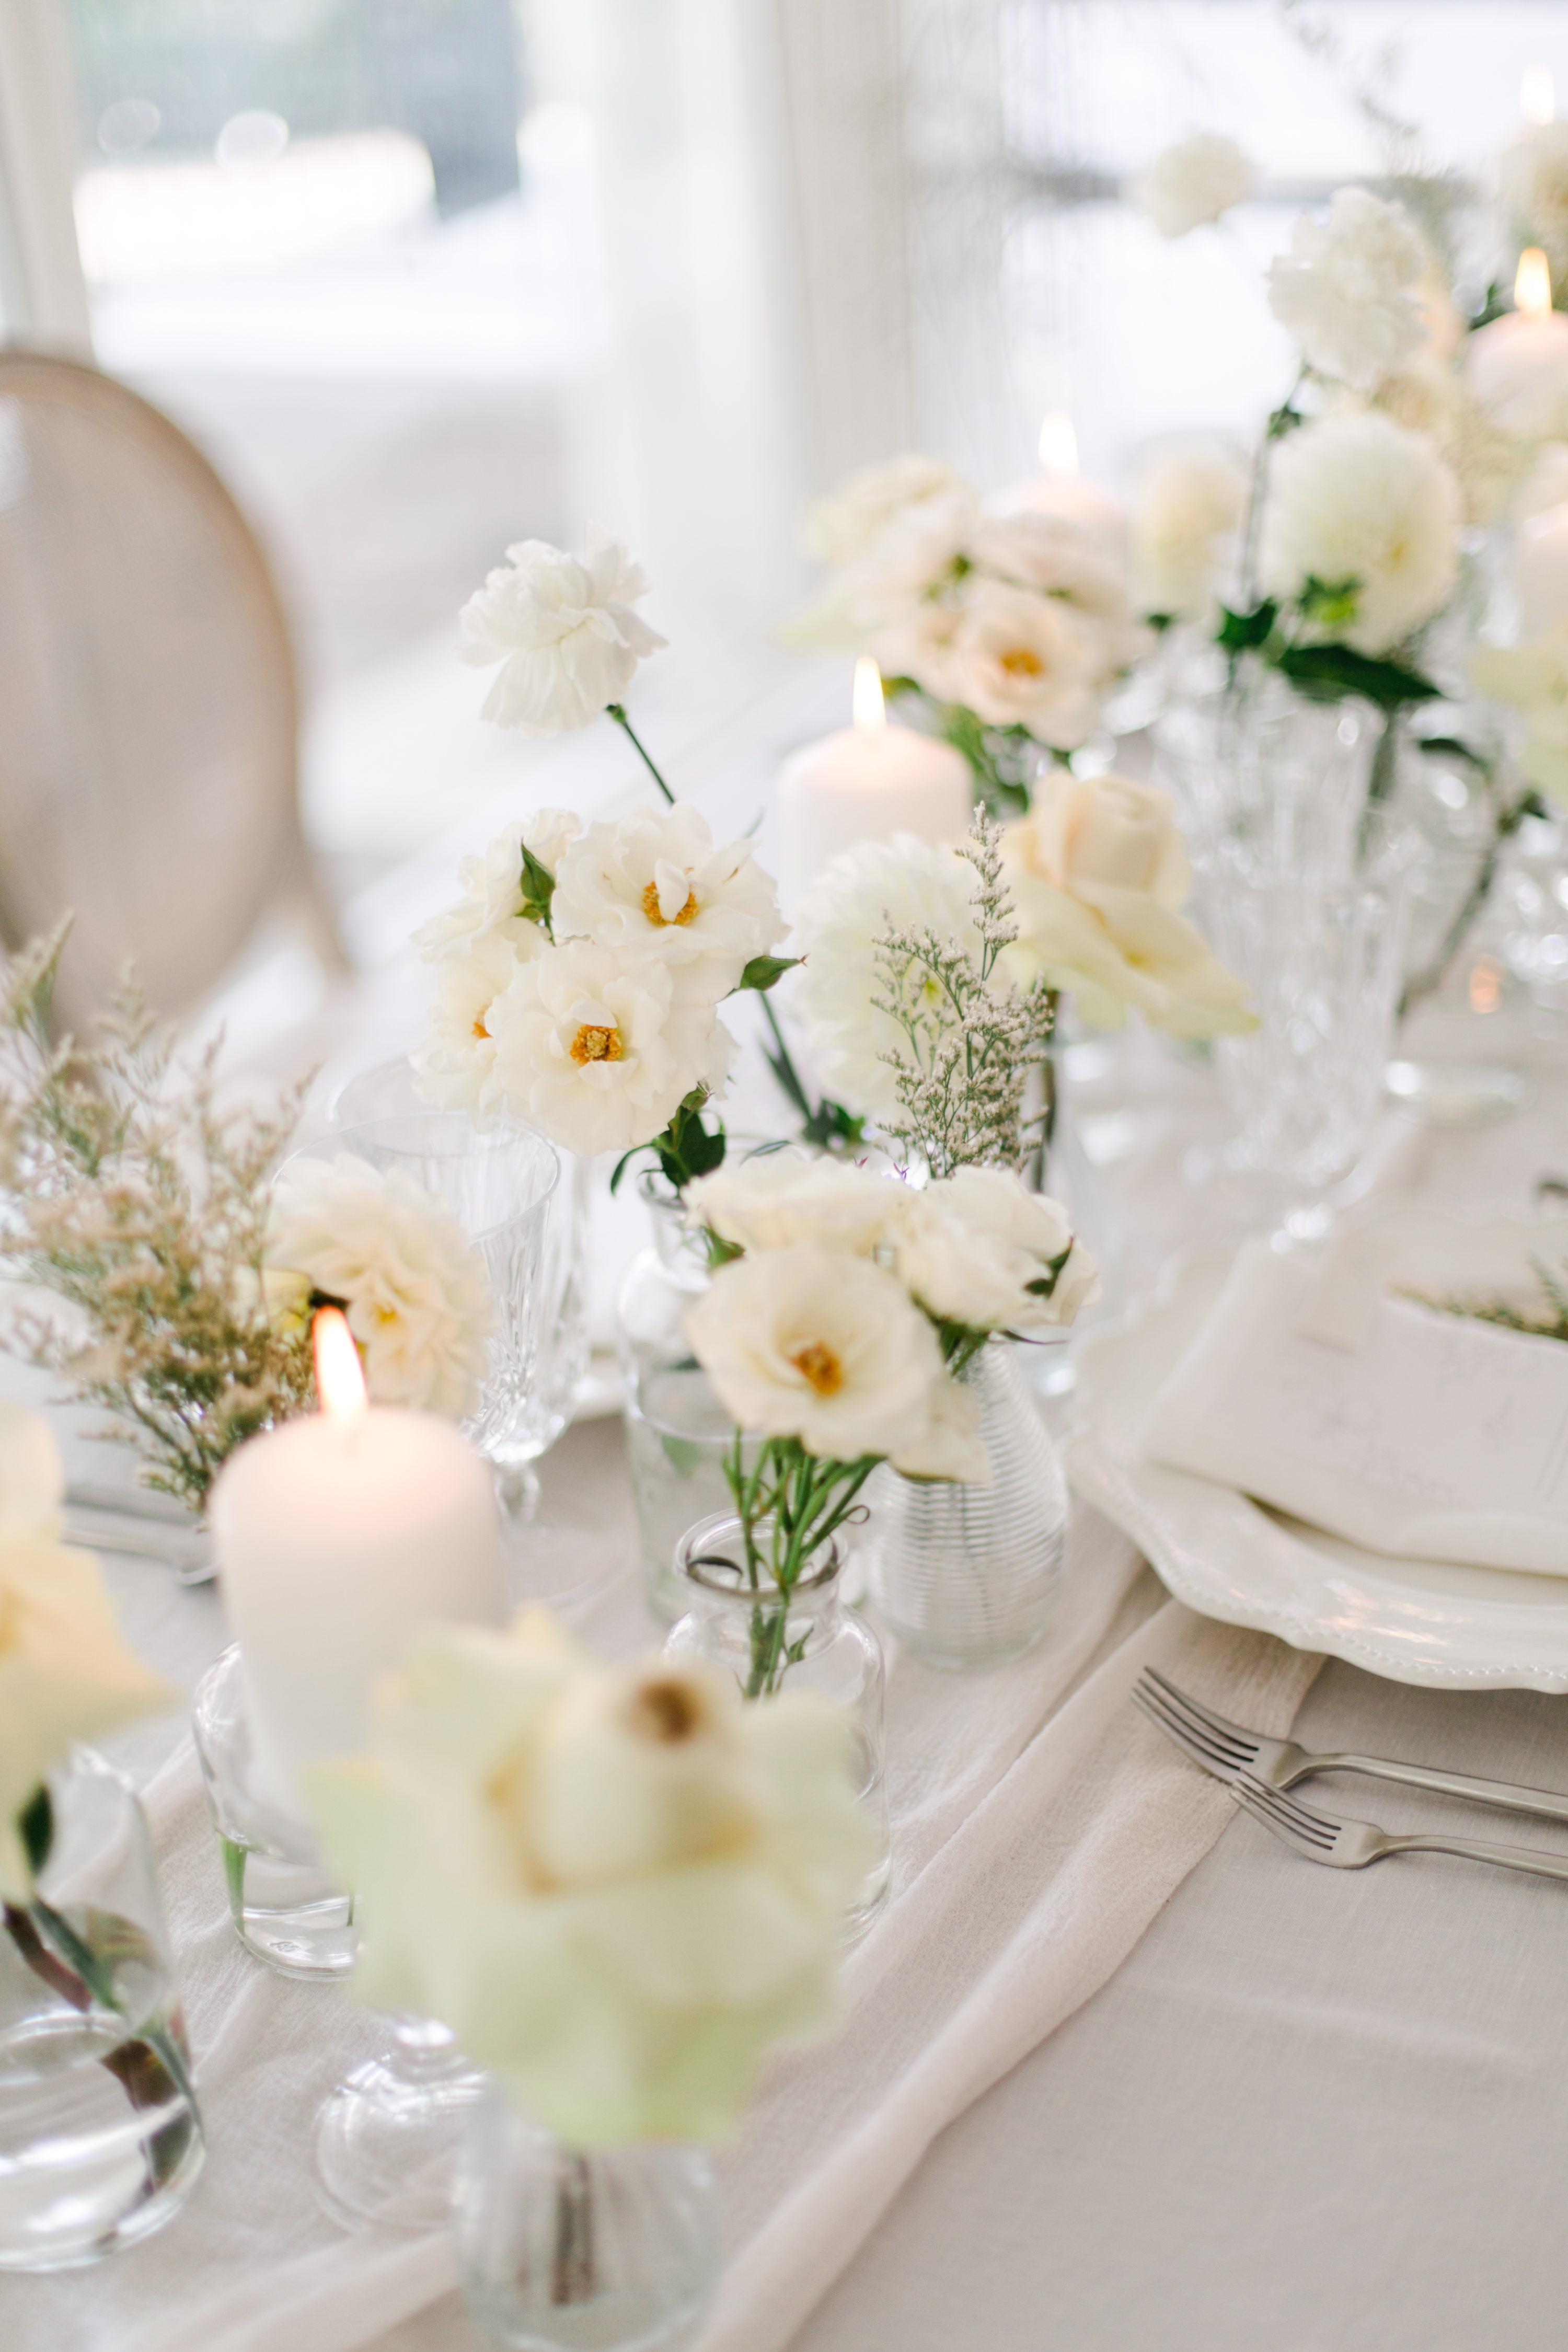 All white wedding table with bud vases filled with white florals